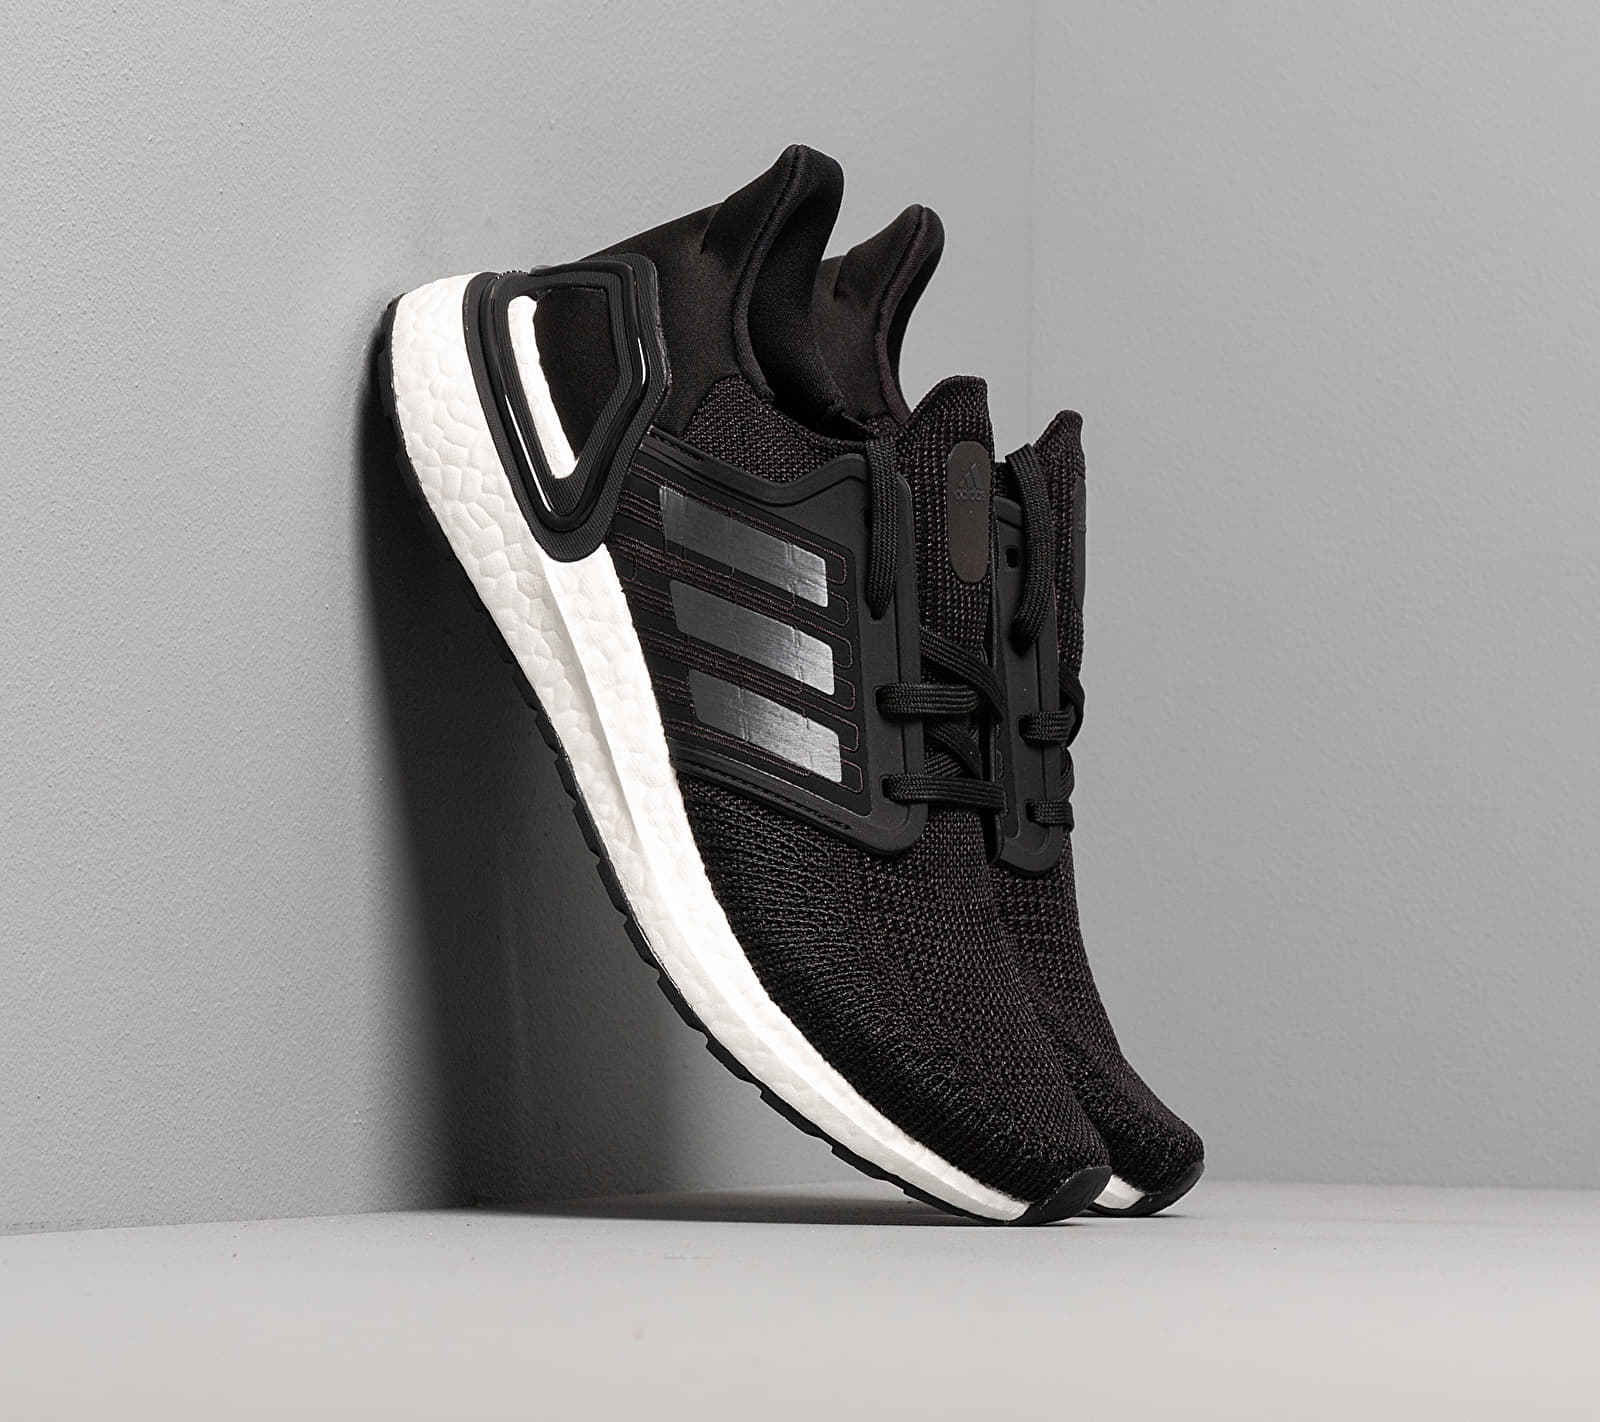 adidas UltraBOOST 20 W Core Black/ Night Metalic/ Ftw White